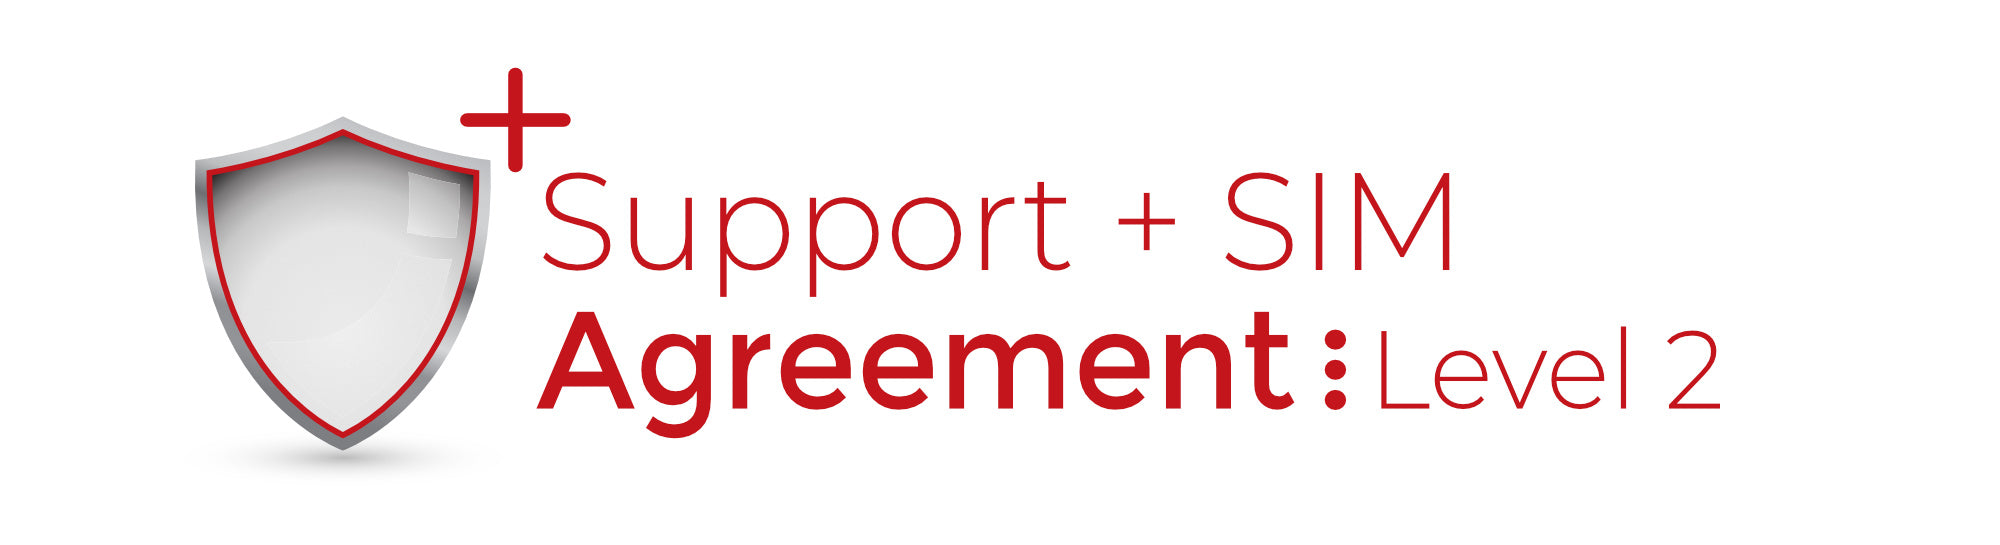 Support Level 2 + SIM Agreement - (24 Programming changes per year + £12 SIM) - Commtel Shop